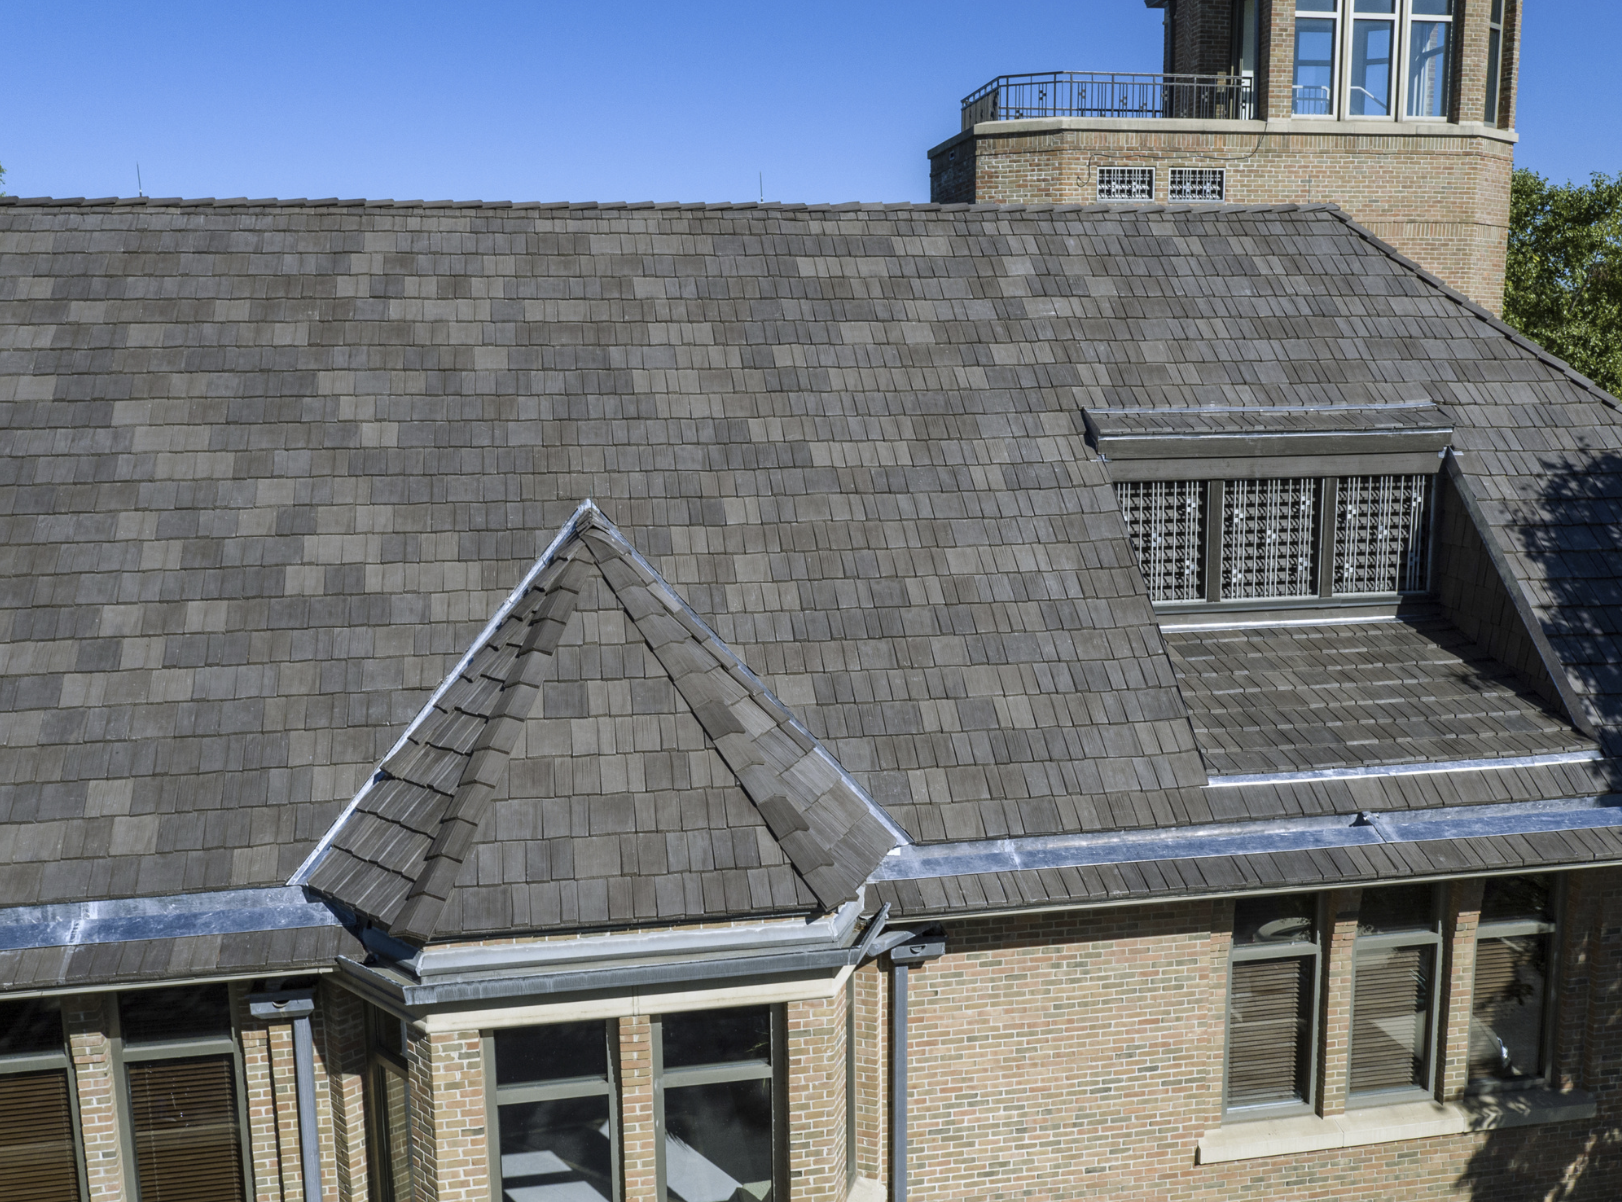 Crews Installed 23 000 Square Feet Of Bellaforte Shake By Davinci Roofscapes On The Building S Main Roof Photos